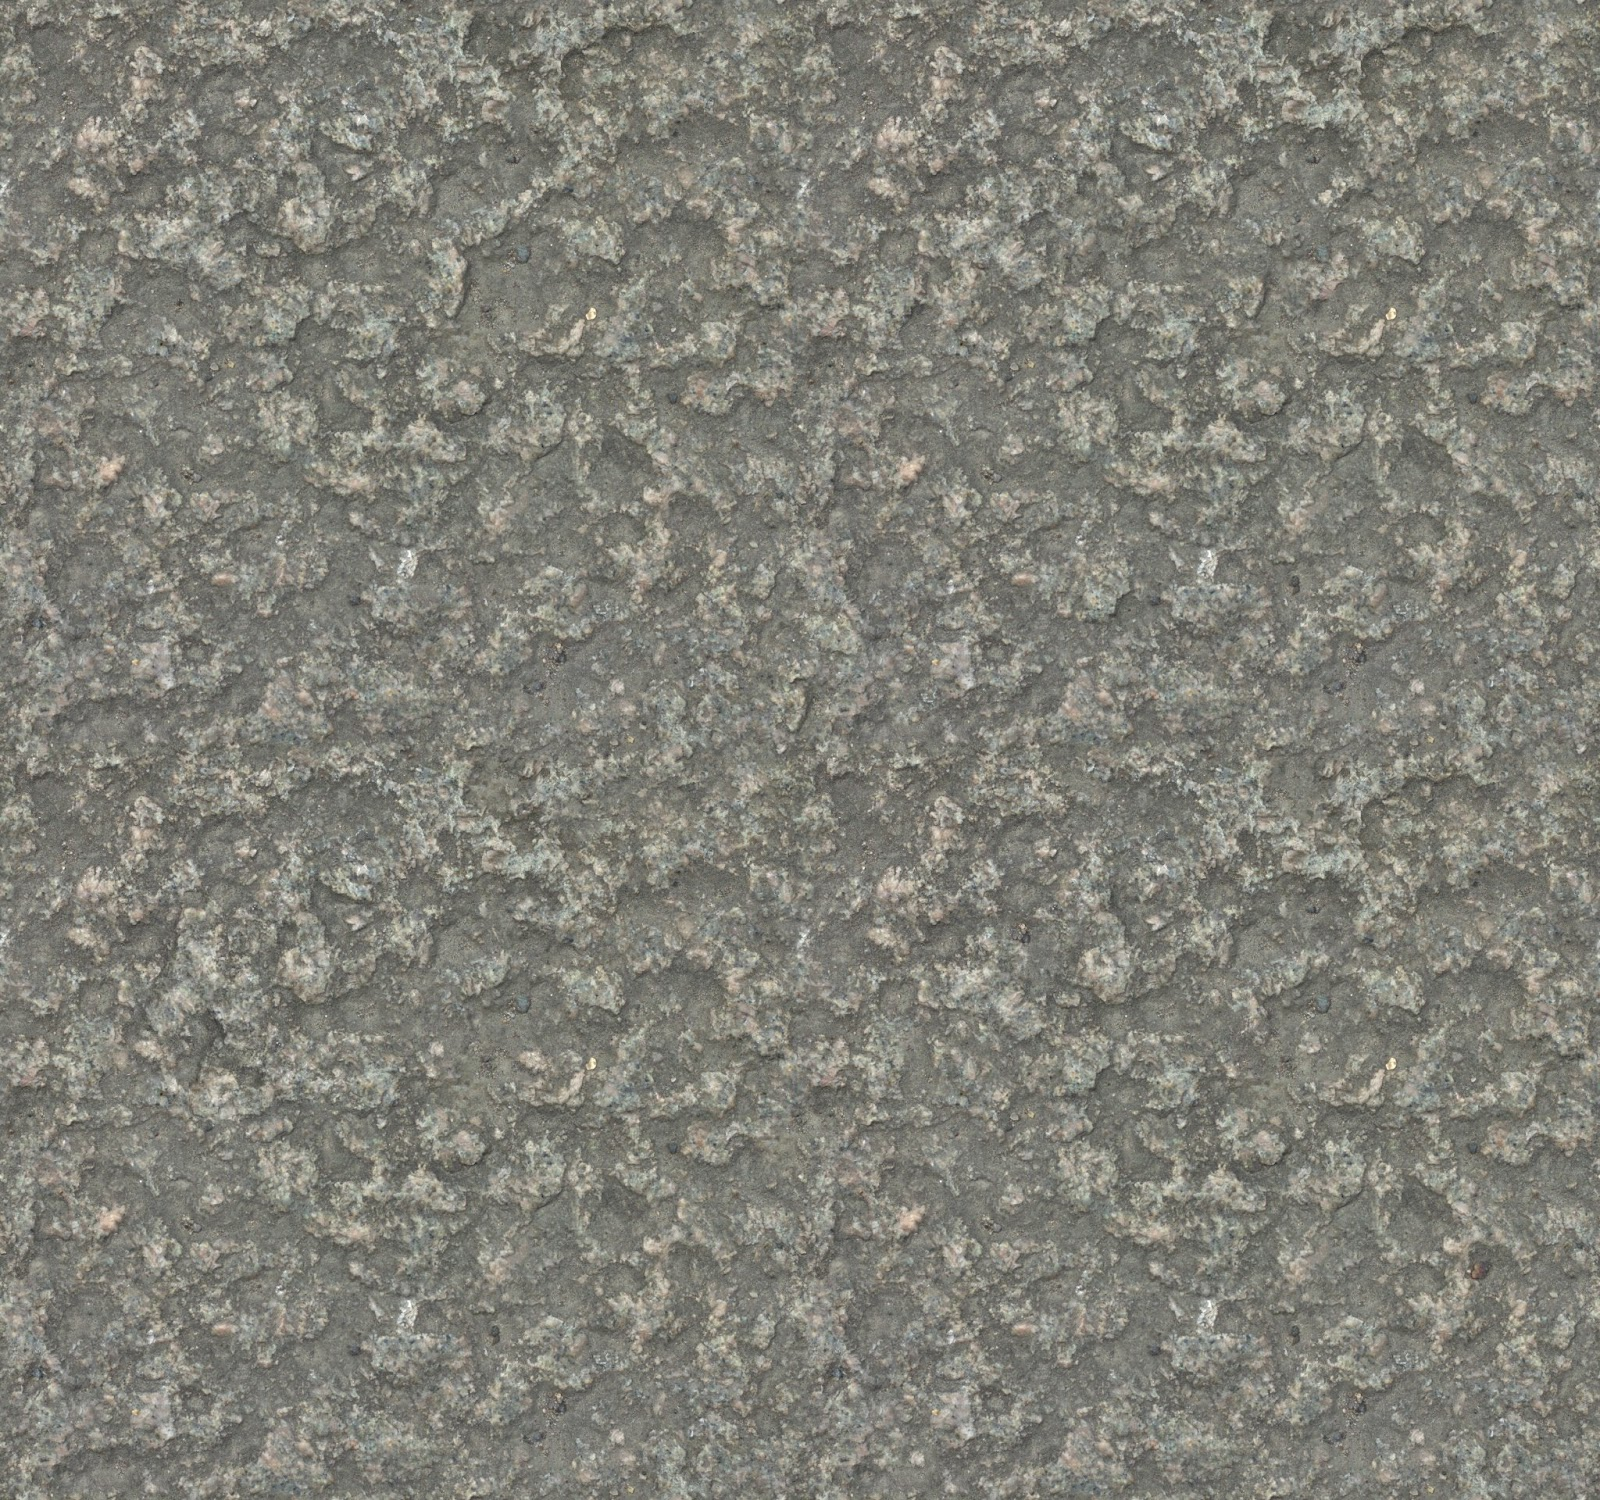 (CONCRETE 15) seamless floor granite texture